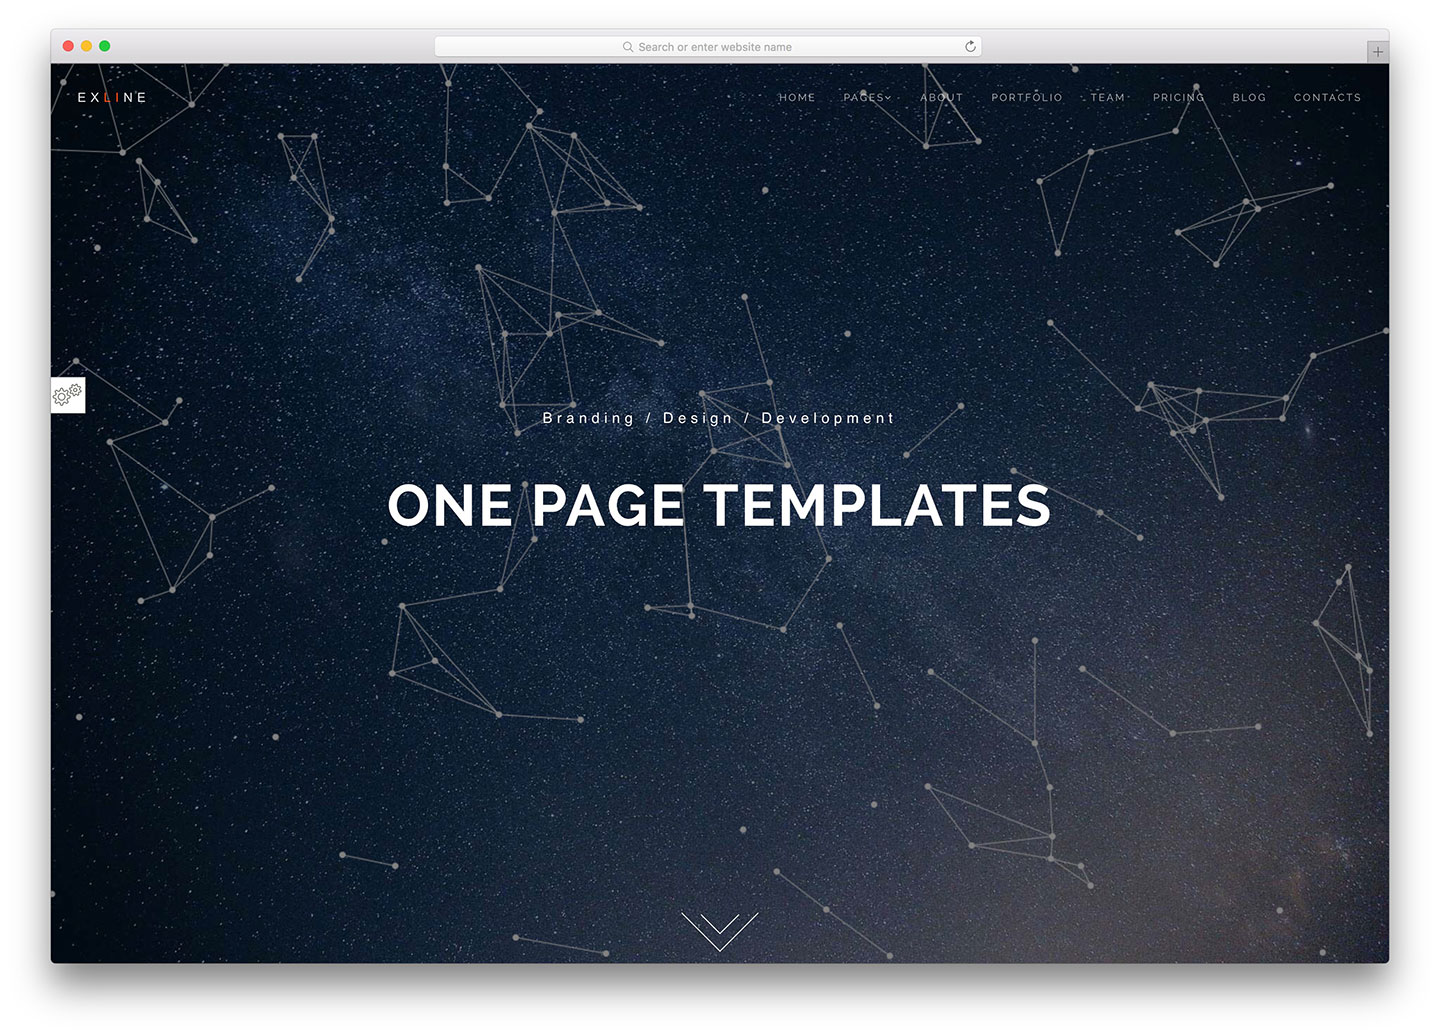 37 Best One Page Website Templates With Smooth Parallax Scrolling [HTML & WordPress] 2019